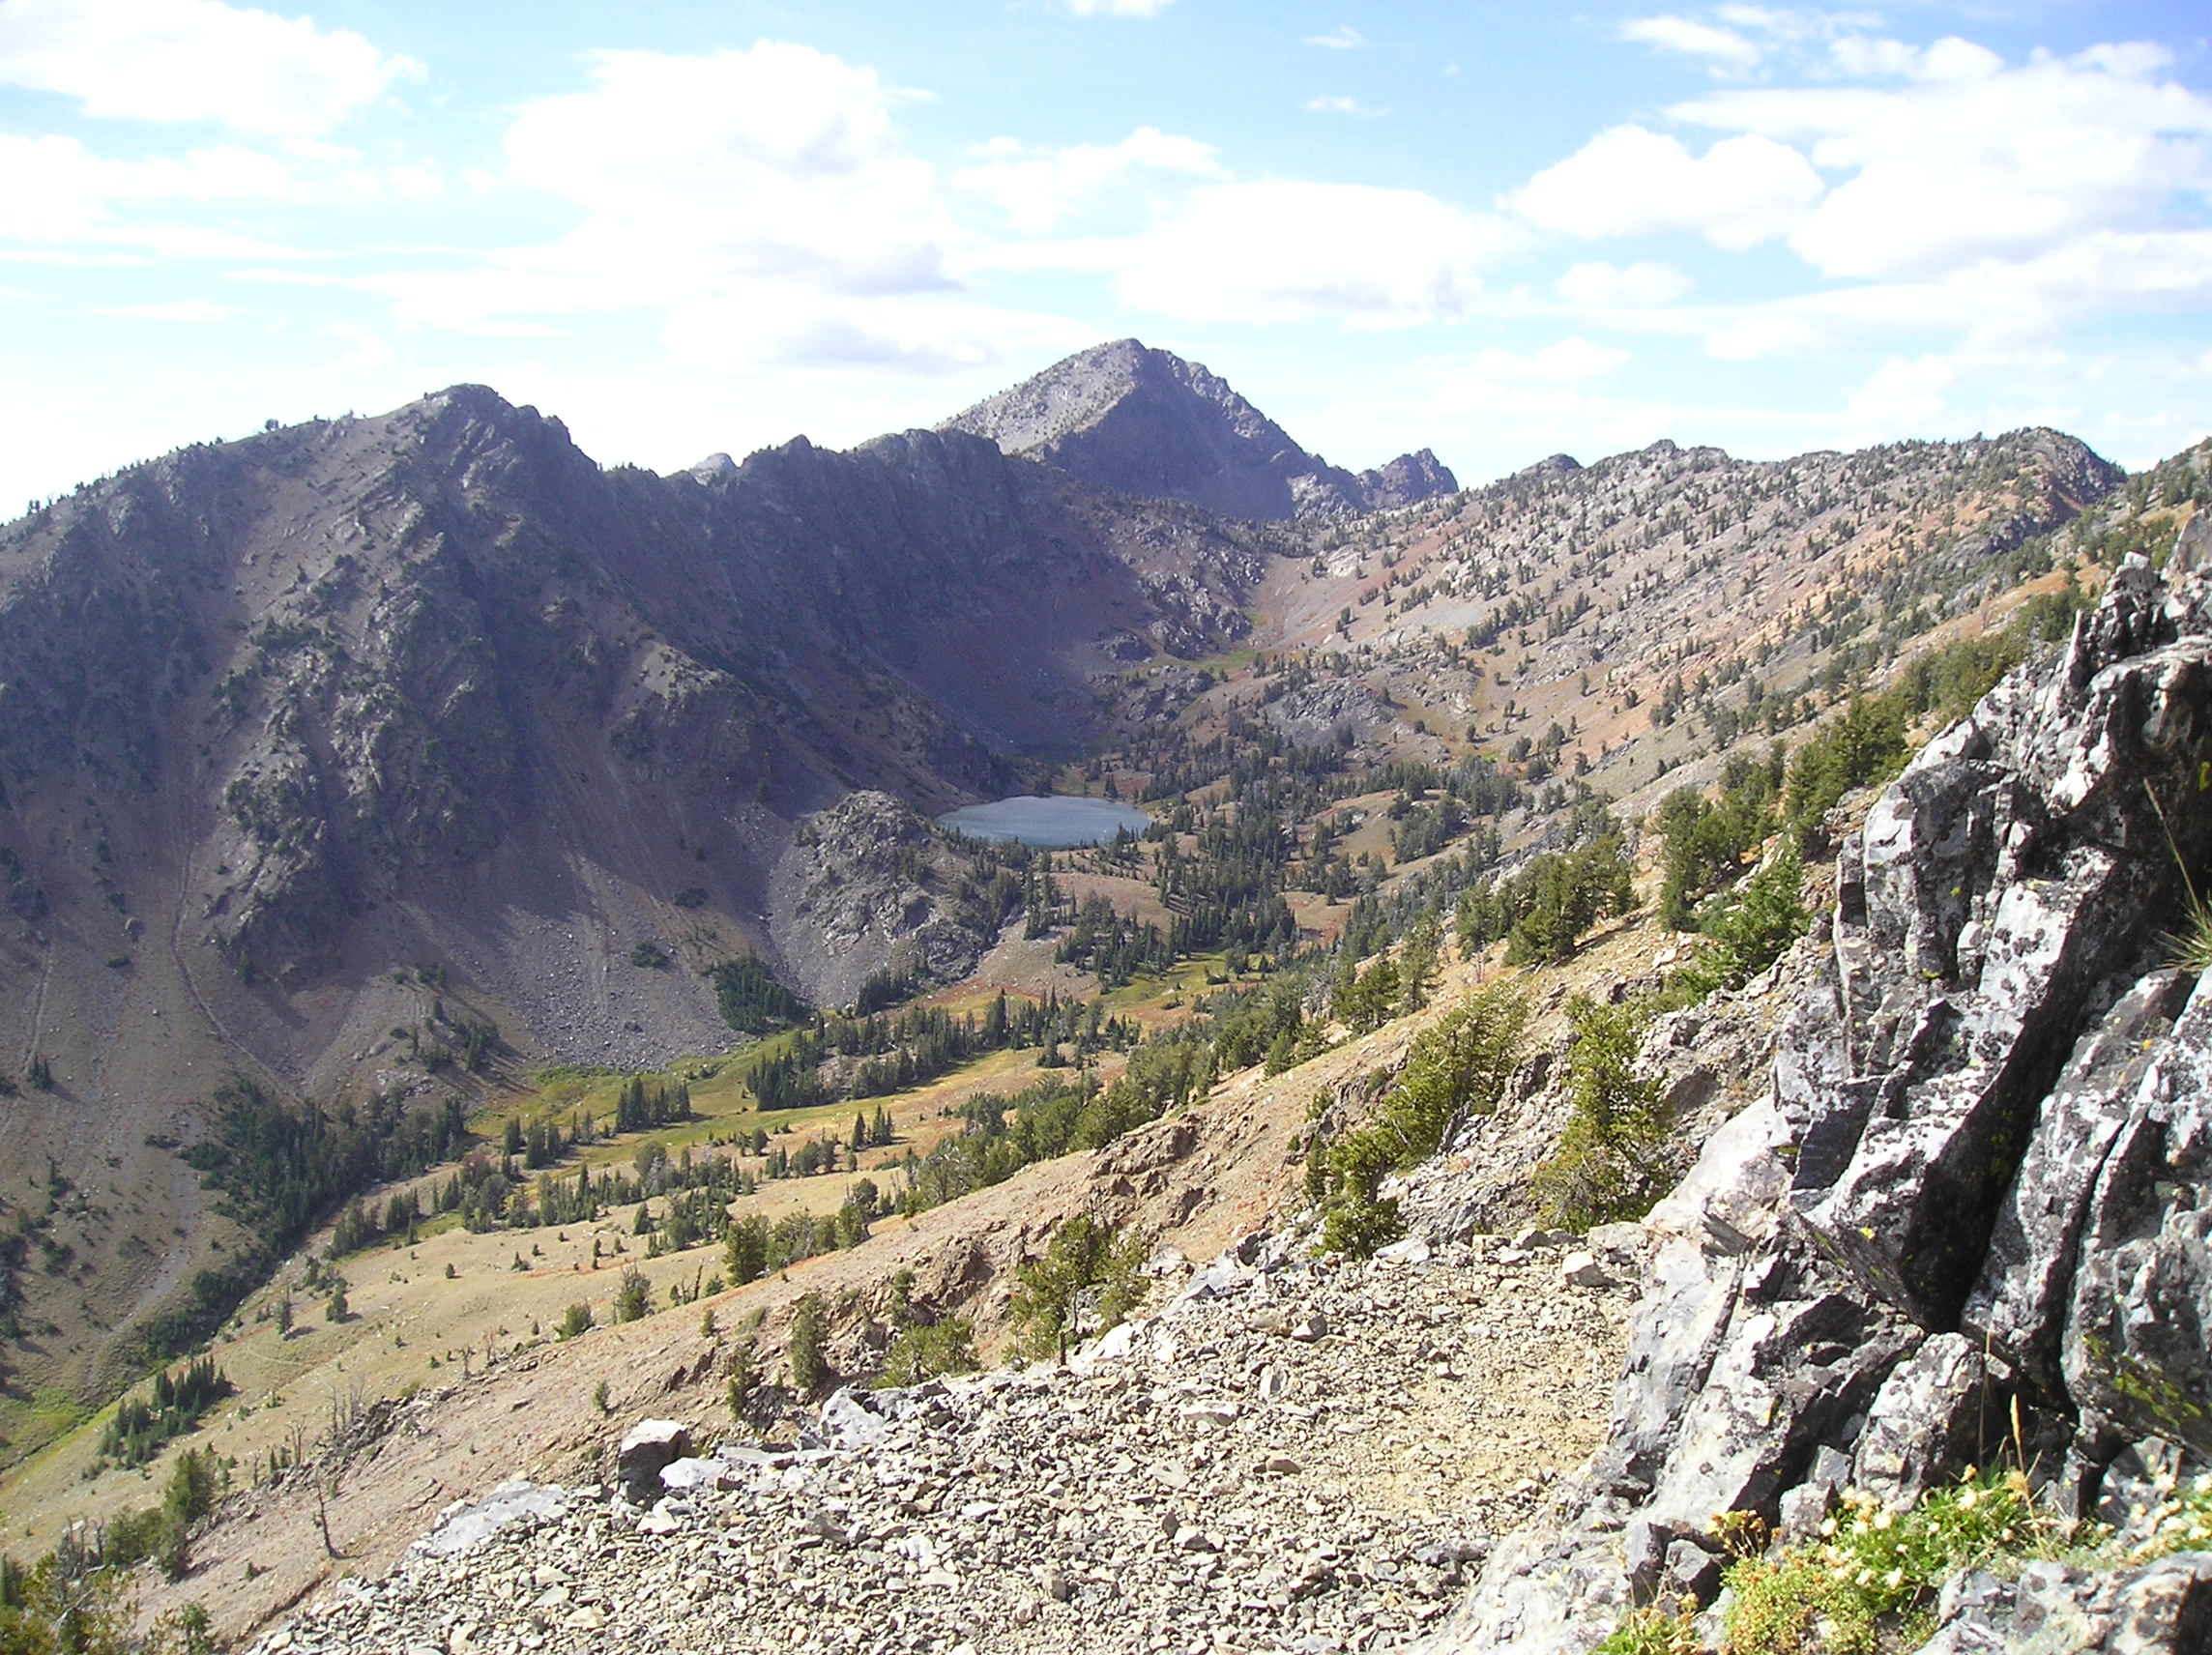 HIgh mountain Twin Lakes in distance along rugged trail